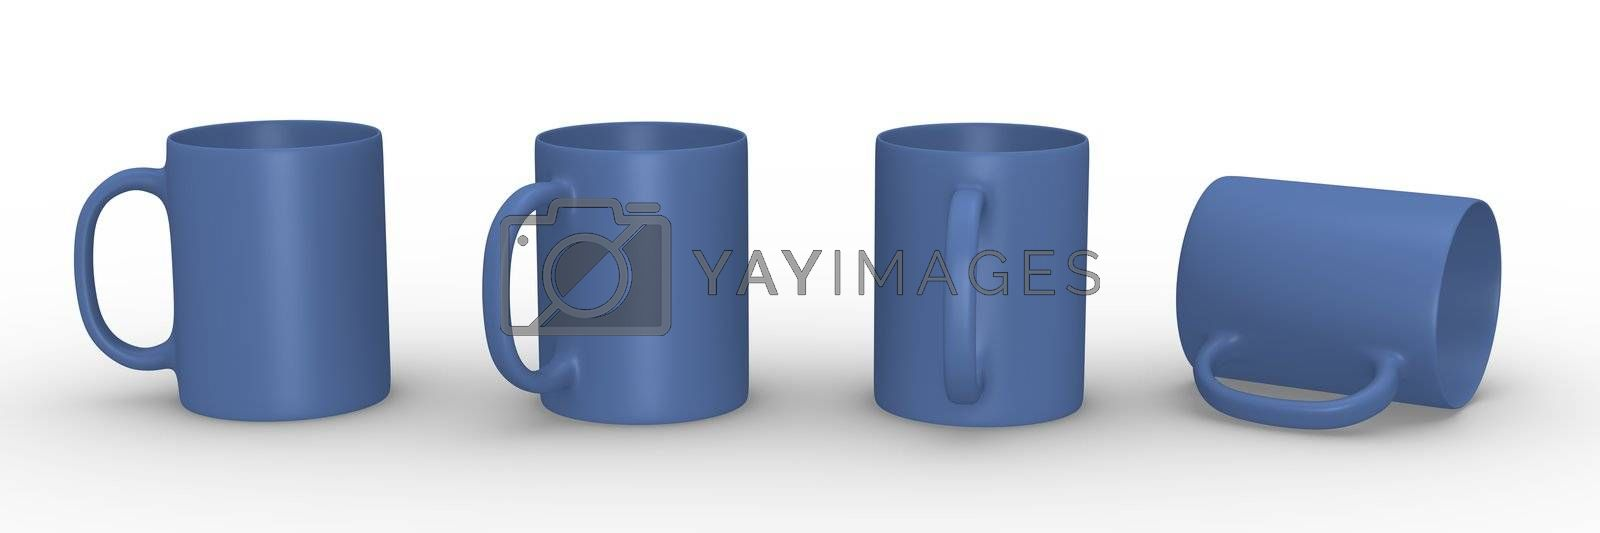 Royalty free image of Blue mugs by bayberry